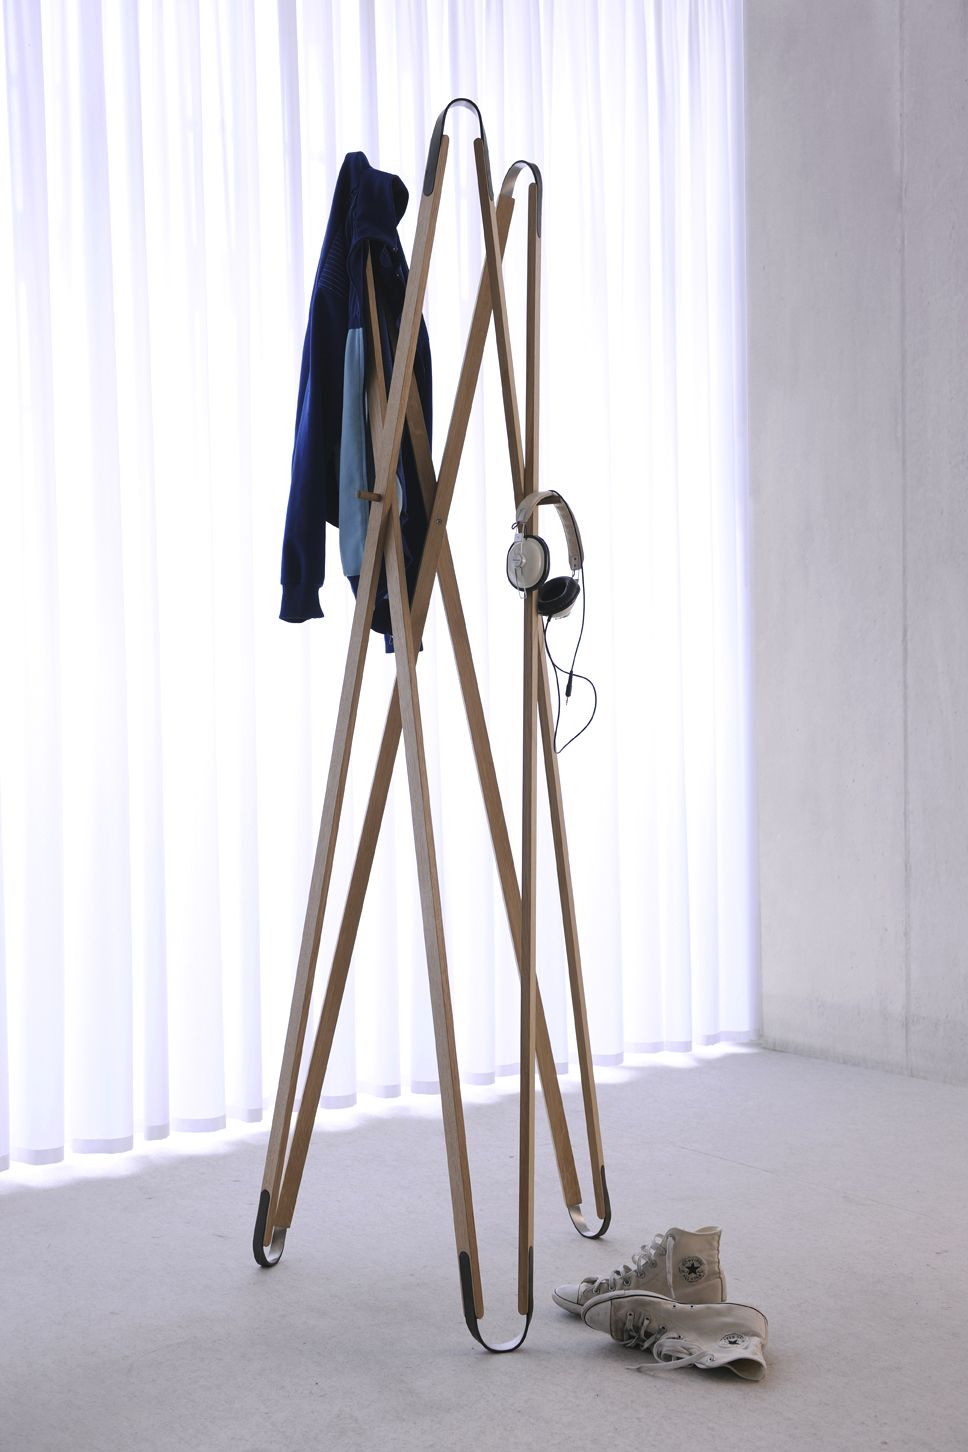 X3 Foldable Coat Stand   Design by Anne Geier & Melinda Barth  Produced by Via Werkstätten Berlin, social responsable Workshop http://shop.via-werkstaetten.de/de/Garderobe-X3  The delicate form consists of simple parts made of traditional materials such as oak, leather and stainless steel. The mechanical coupling devices allows the user to expand and fold up the wardrobe. This is an essential function for easy transportation and storage.